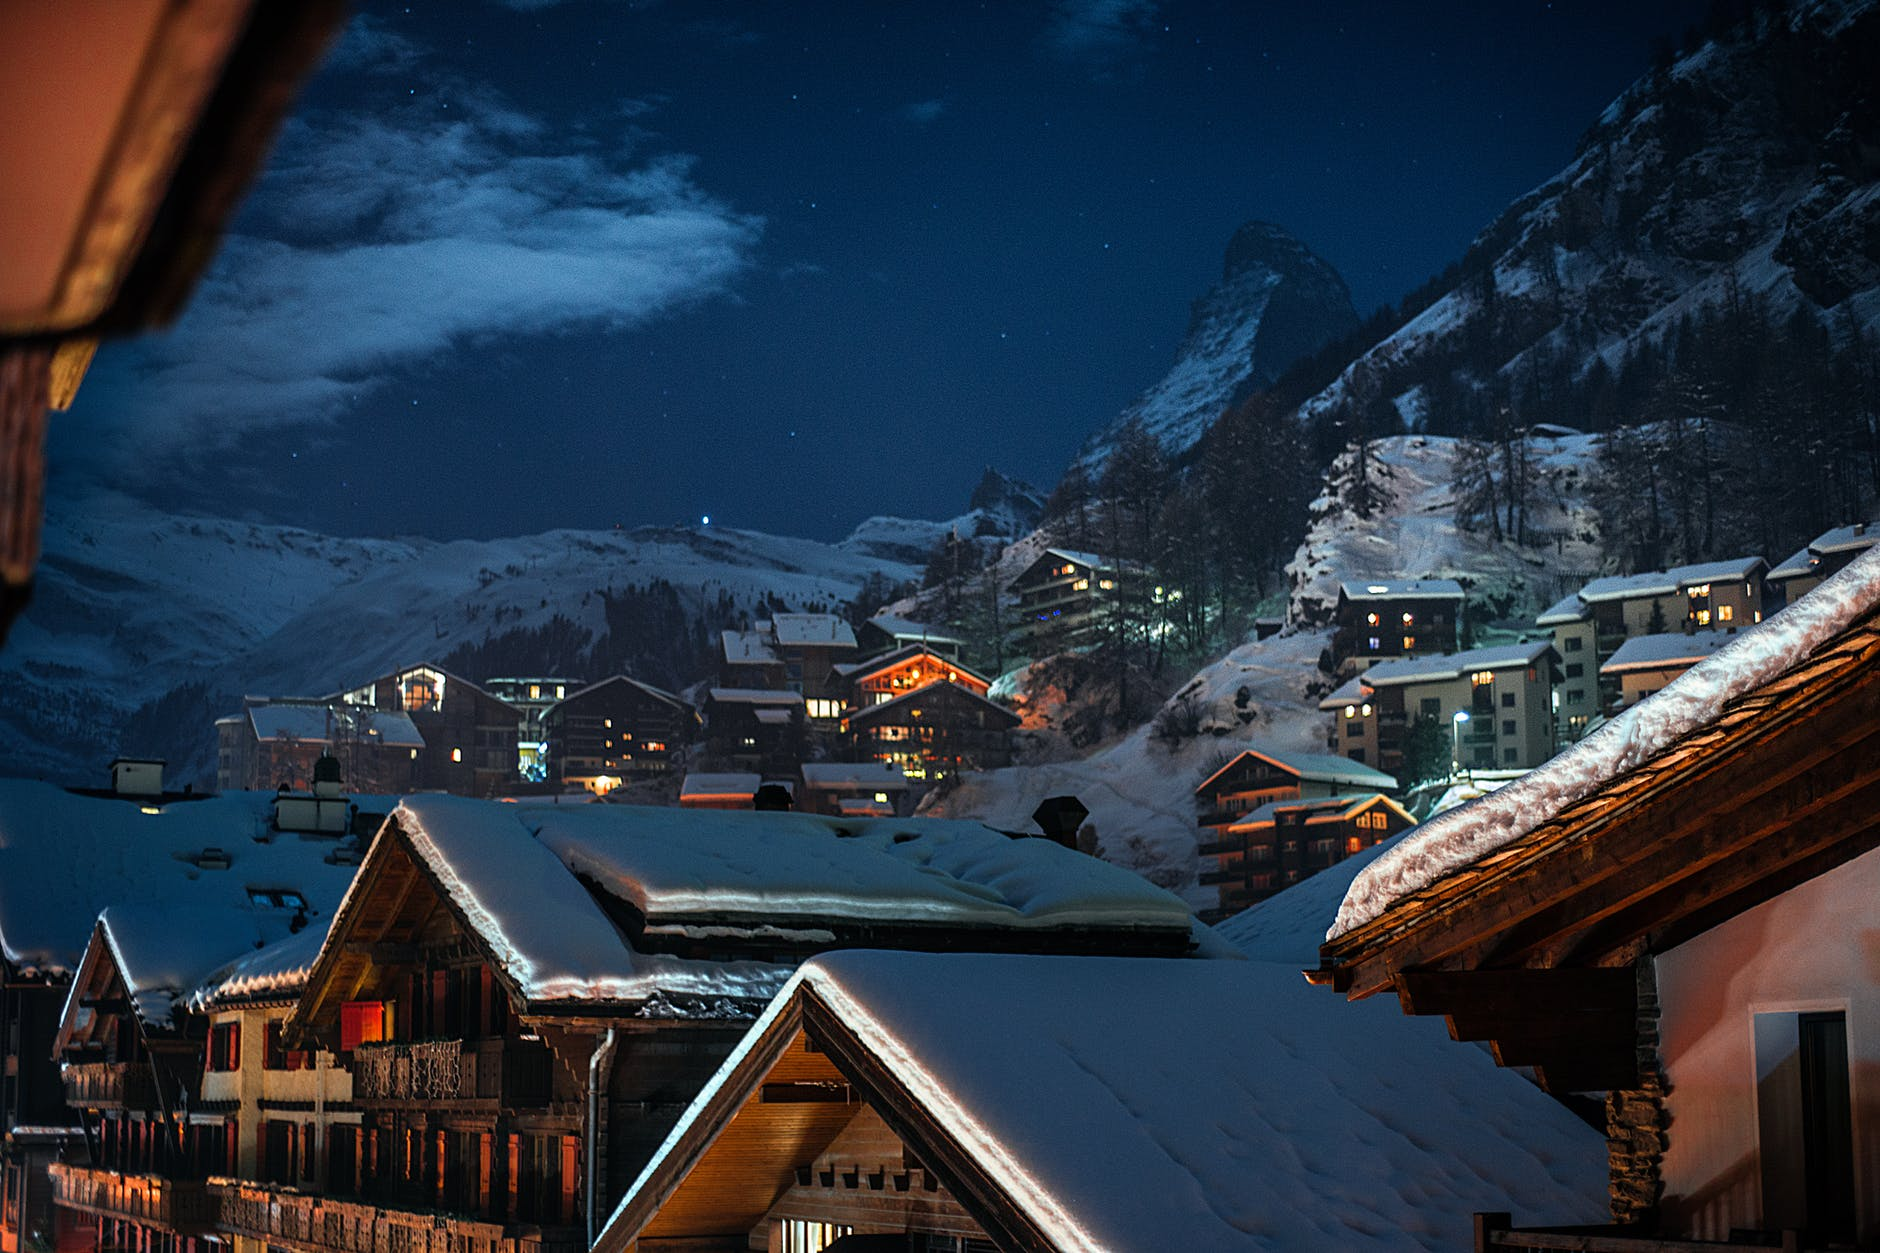 village with residential houses on snowy mounts